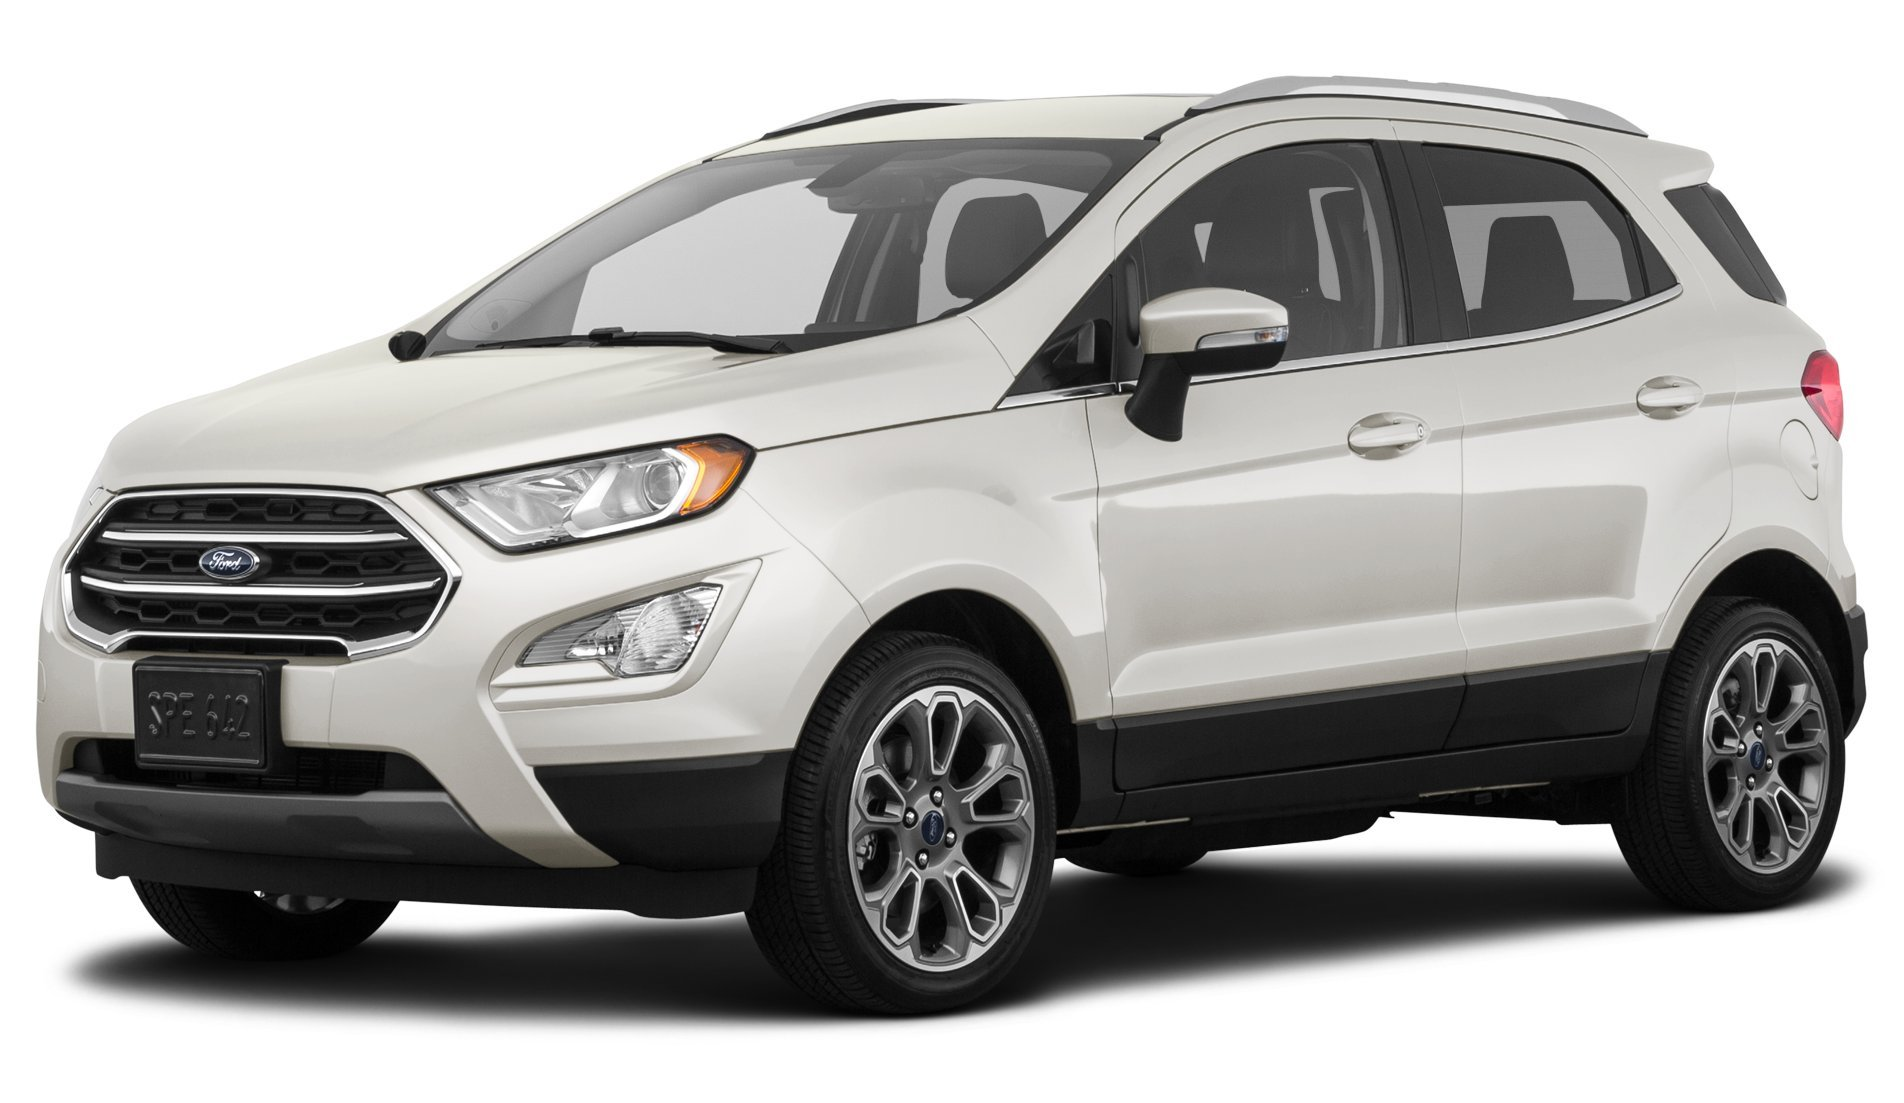 2018 ford ecosport reviews images and specs. Black Bedroom Furniture Sets. Home Design Ideas